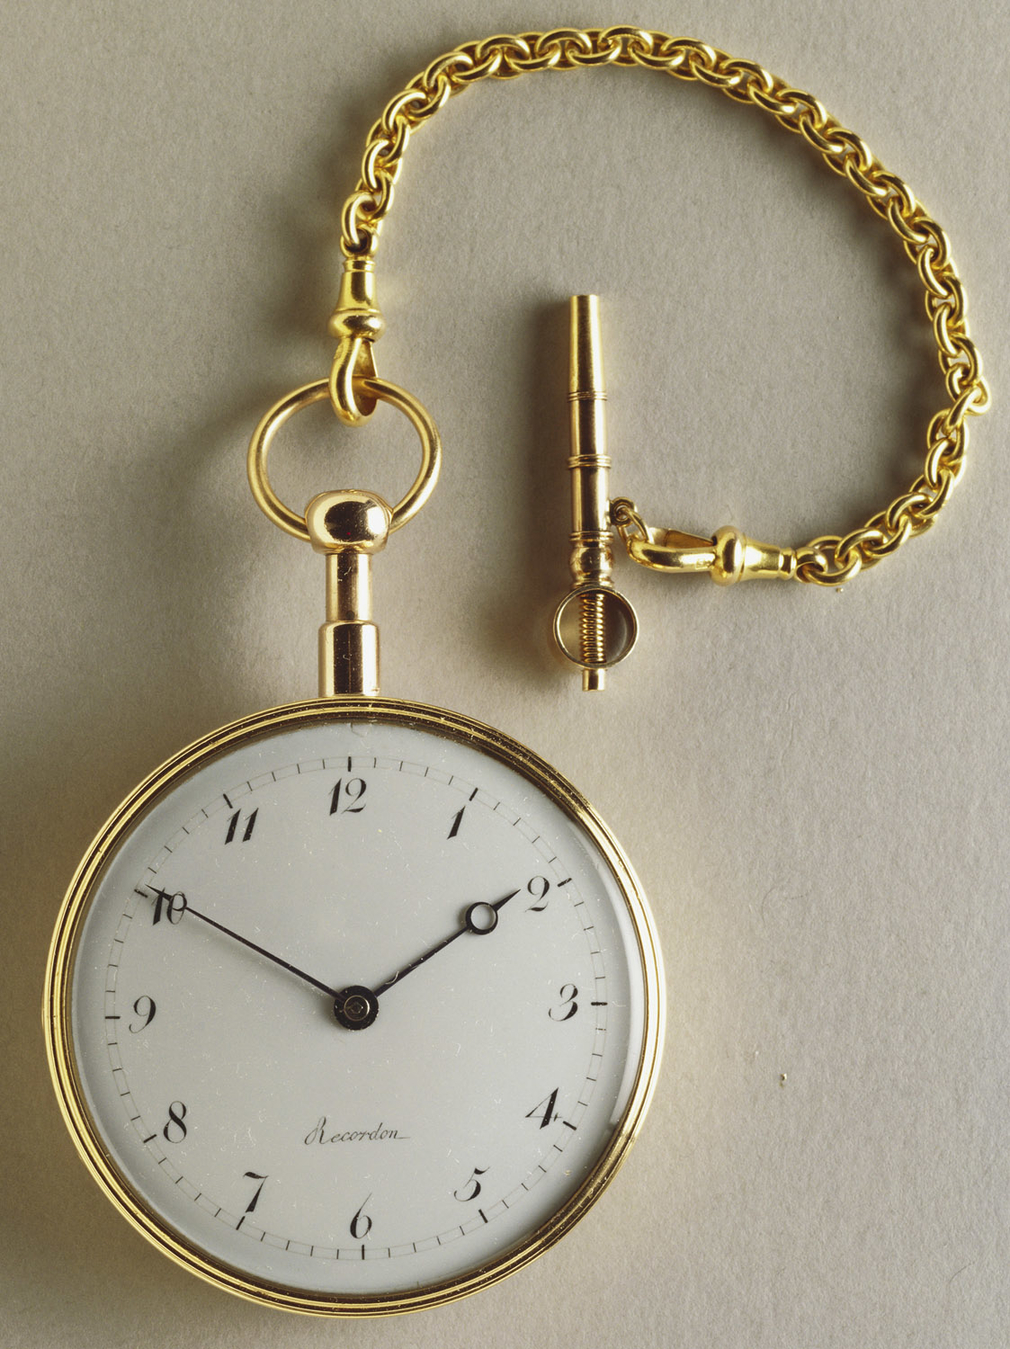 Recordon, Repeating watch with cipher of George III, 1802-03.  RCIN 4712